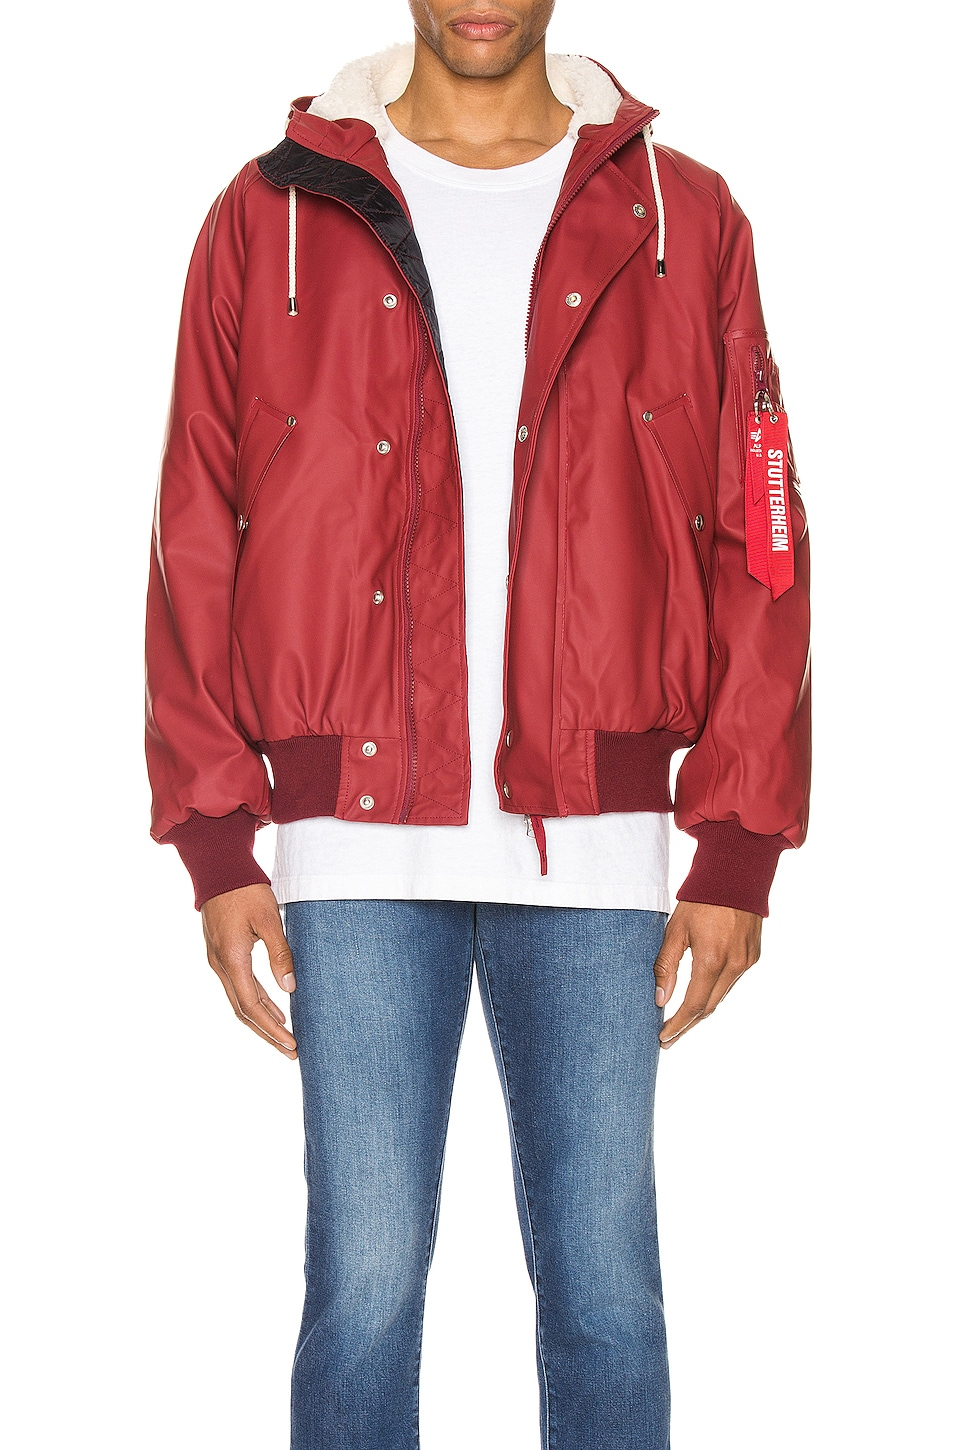 ALPHA INDUSTRIES x Stutterheim N2-B Jacket in Commander Red